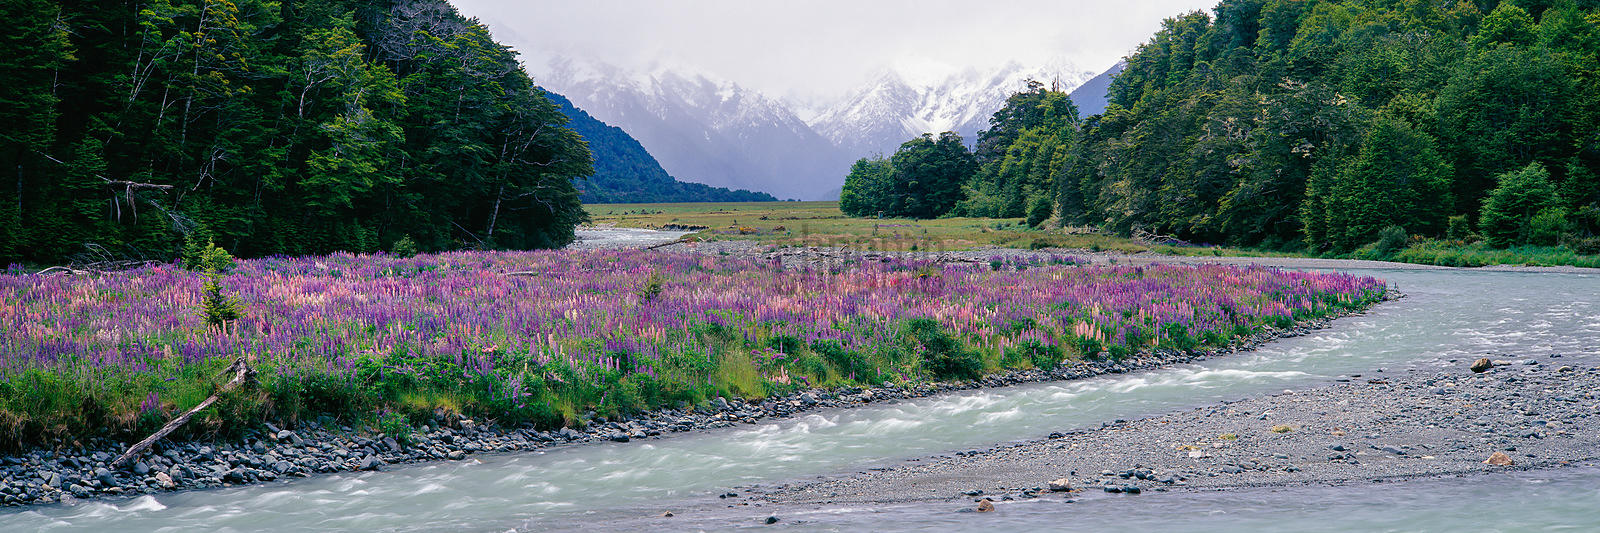 Eglinton River Flowing by Meadow filled with Lupinus perennis,